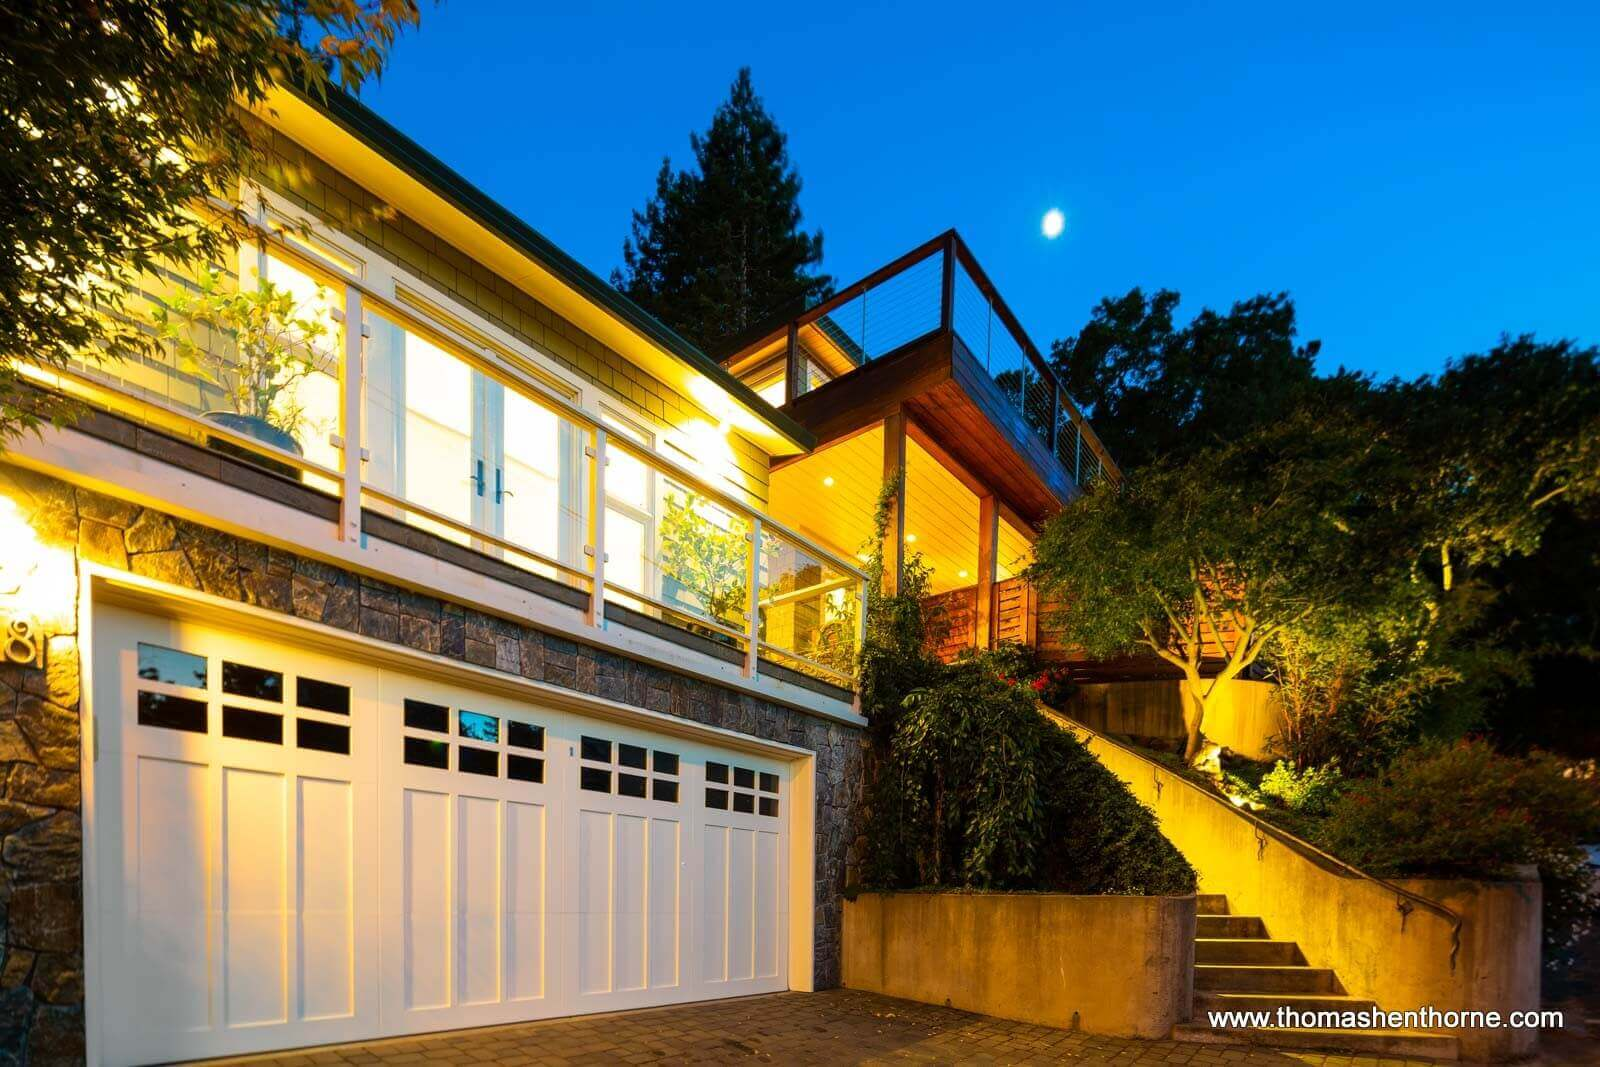 148 Crescent Road in Corte Madera Front at Twilight